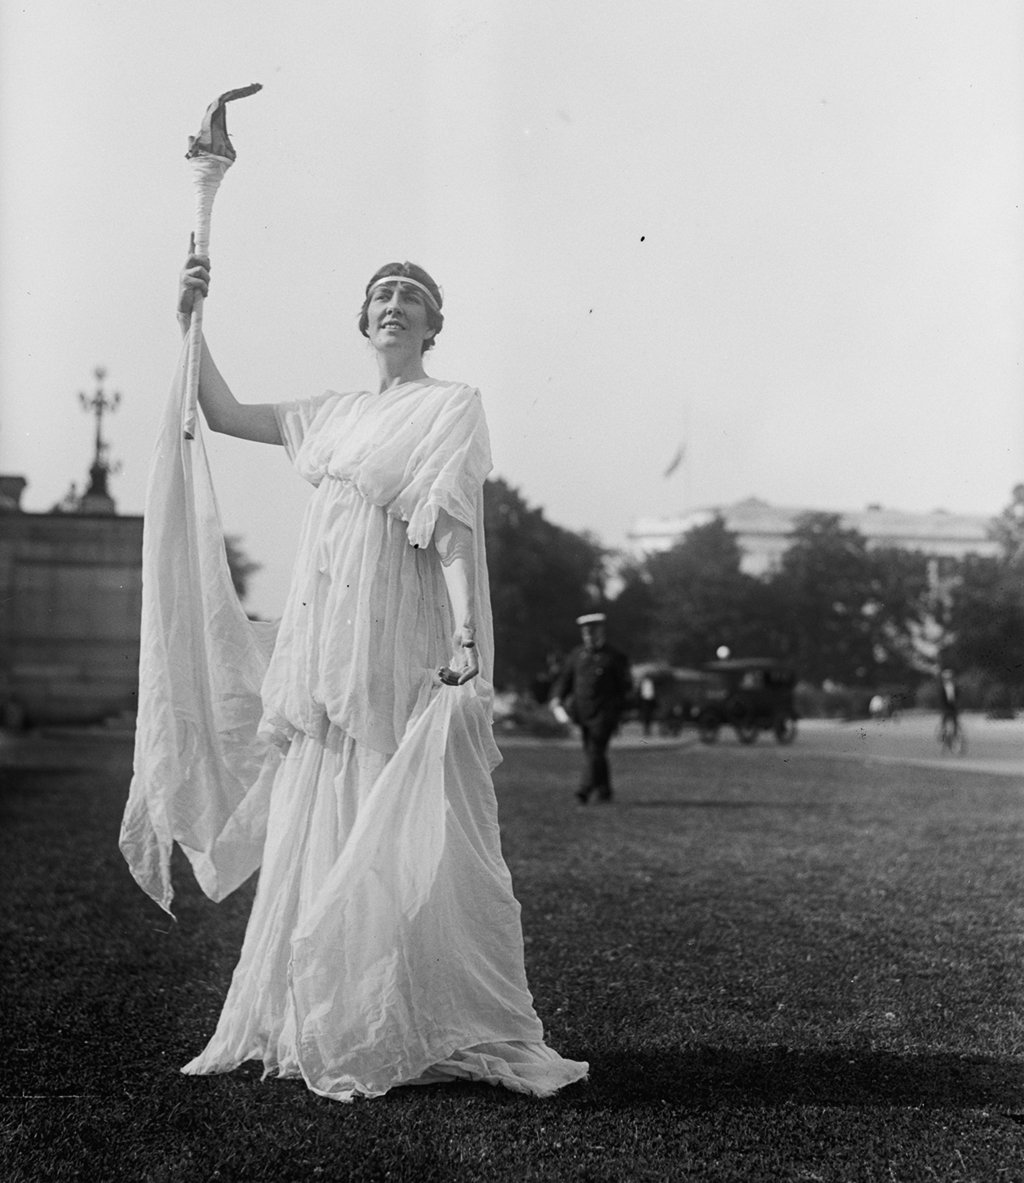 A woman in costume for Fourth of July celebrations in 1918. Photograph via Harris & Ewing Collection (Library of Congress).